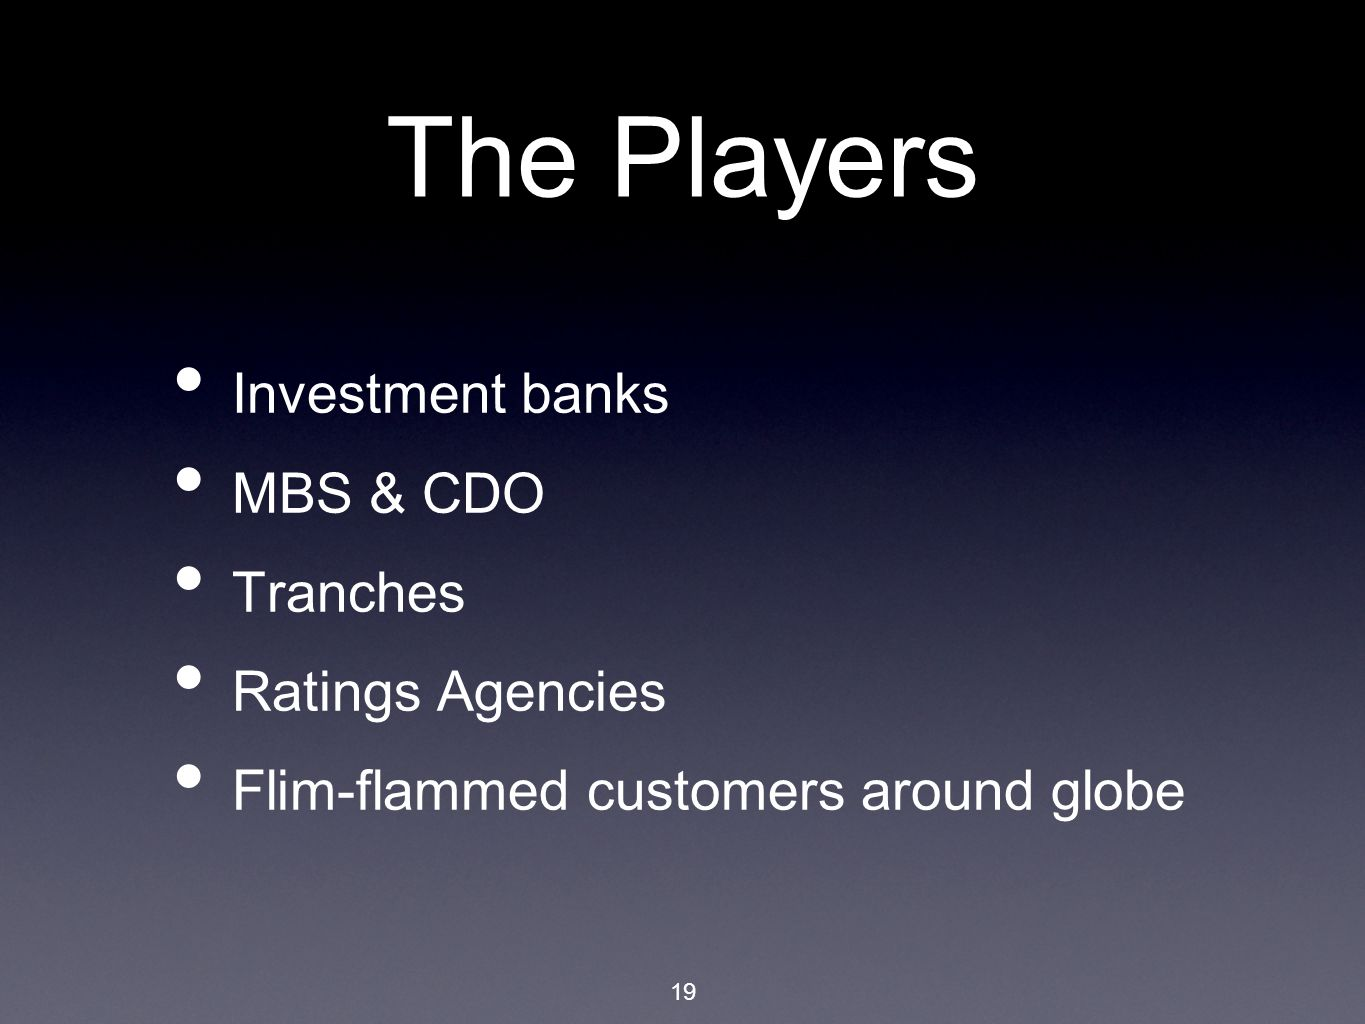 19 The Players Investment banks MBS & CDO Tranches Ratings Agencies Flim-flammed customers around globe